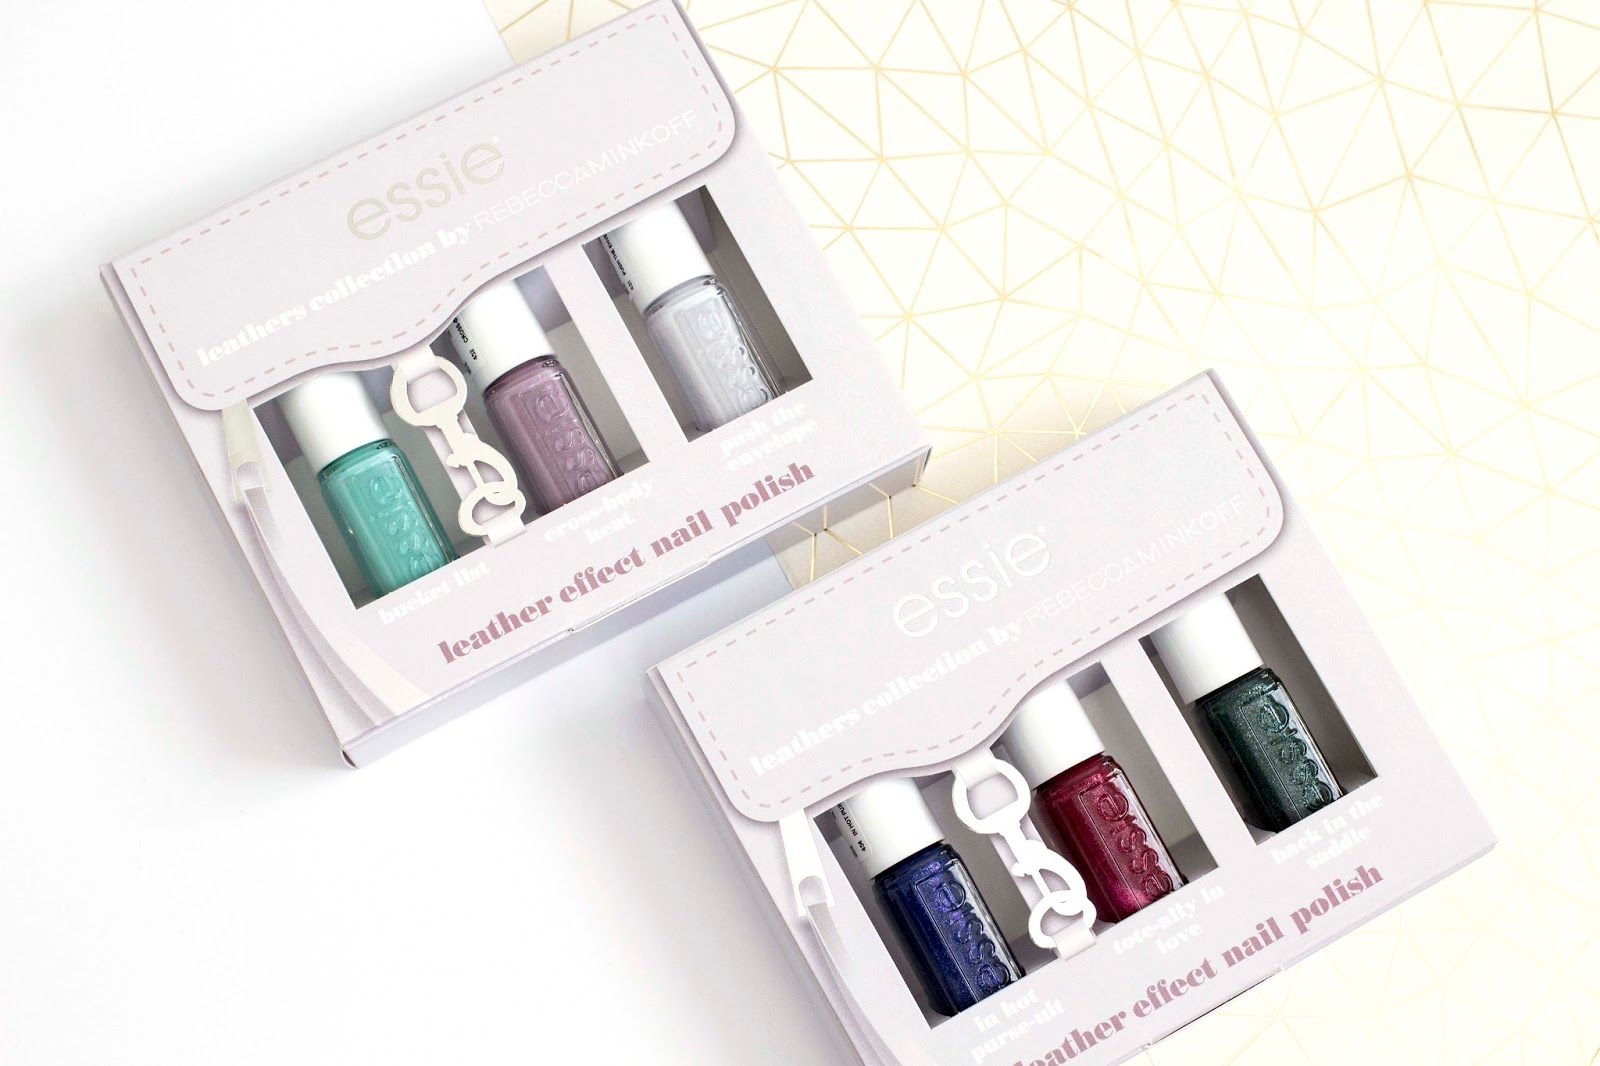 The Essie Leather Collection By Rebecca Minkoff Is Being Released In Two Separate Mini Kits They Arrive Cutest Box Which Has Been Designed To